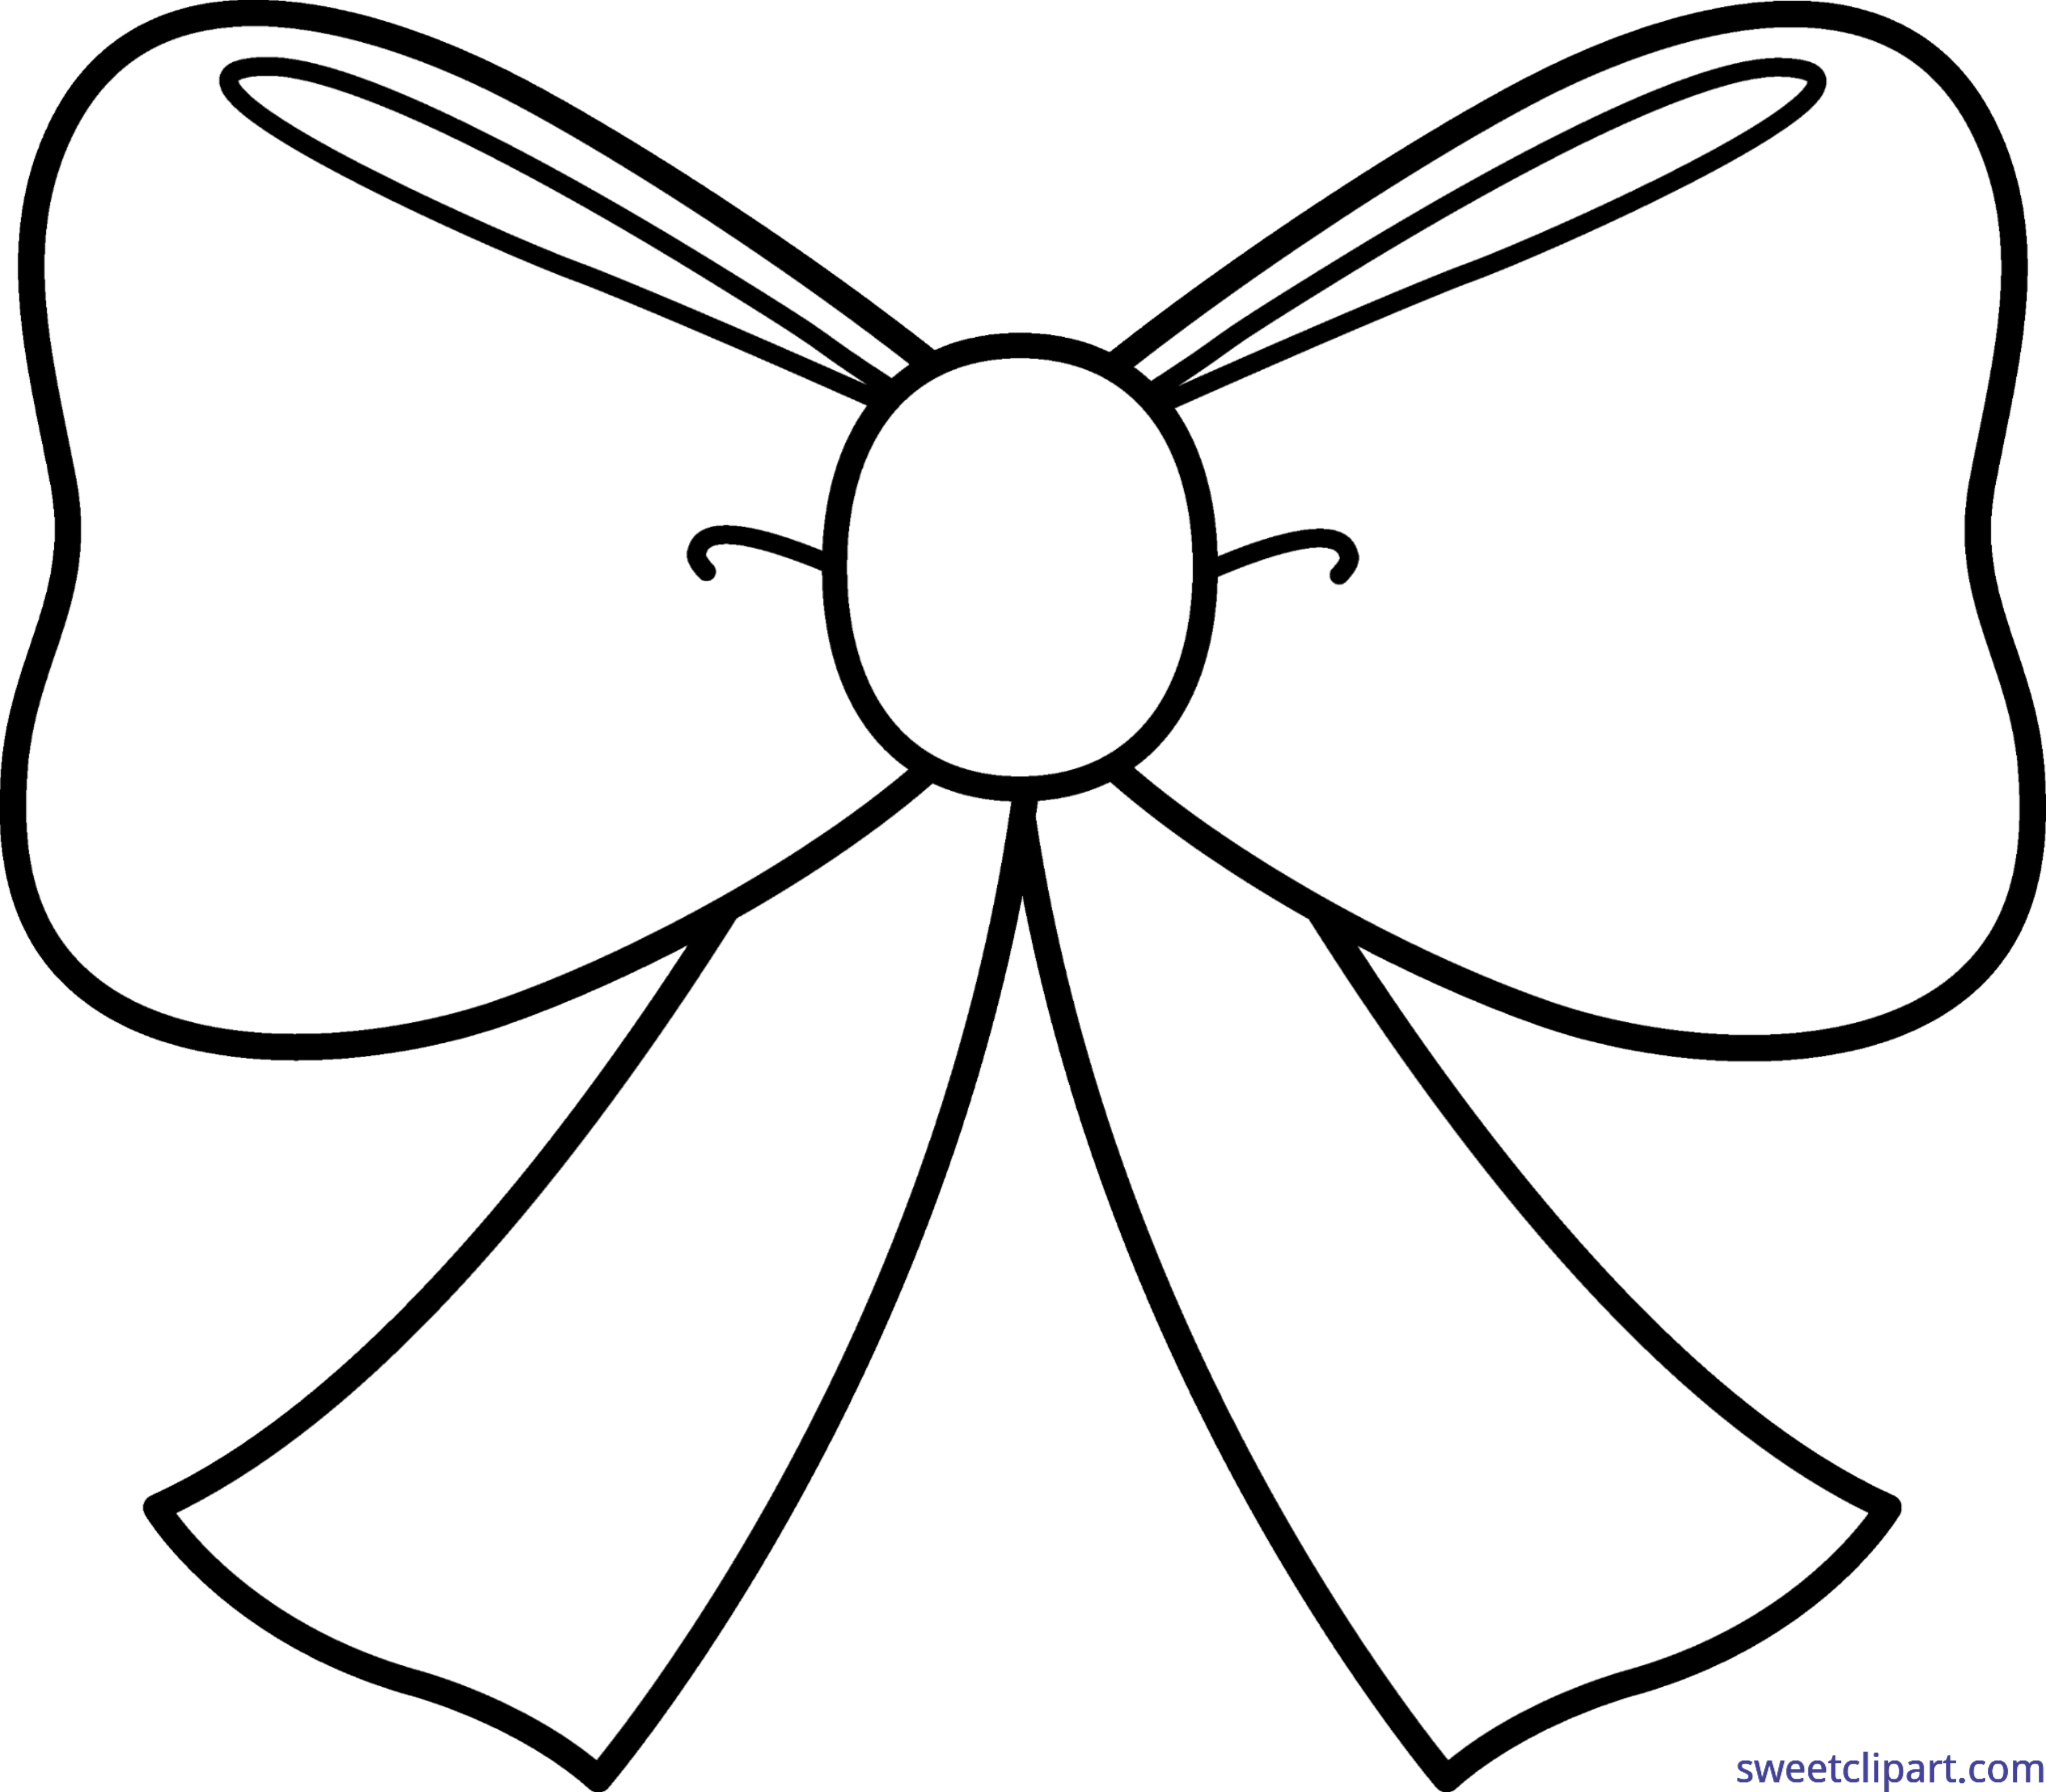 Bows clipart line art. Cute bow coloring page